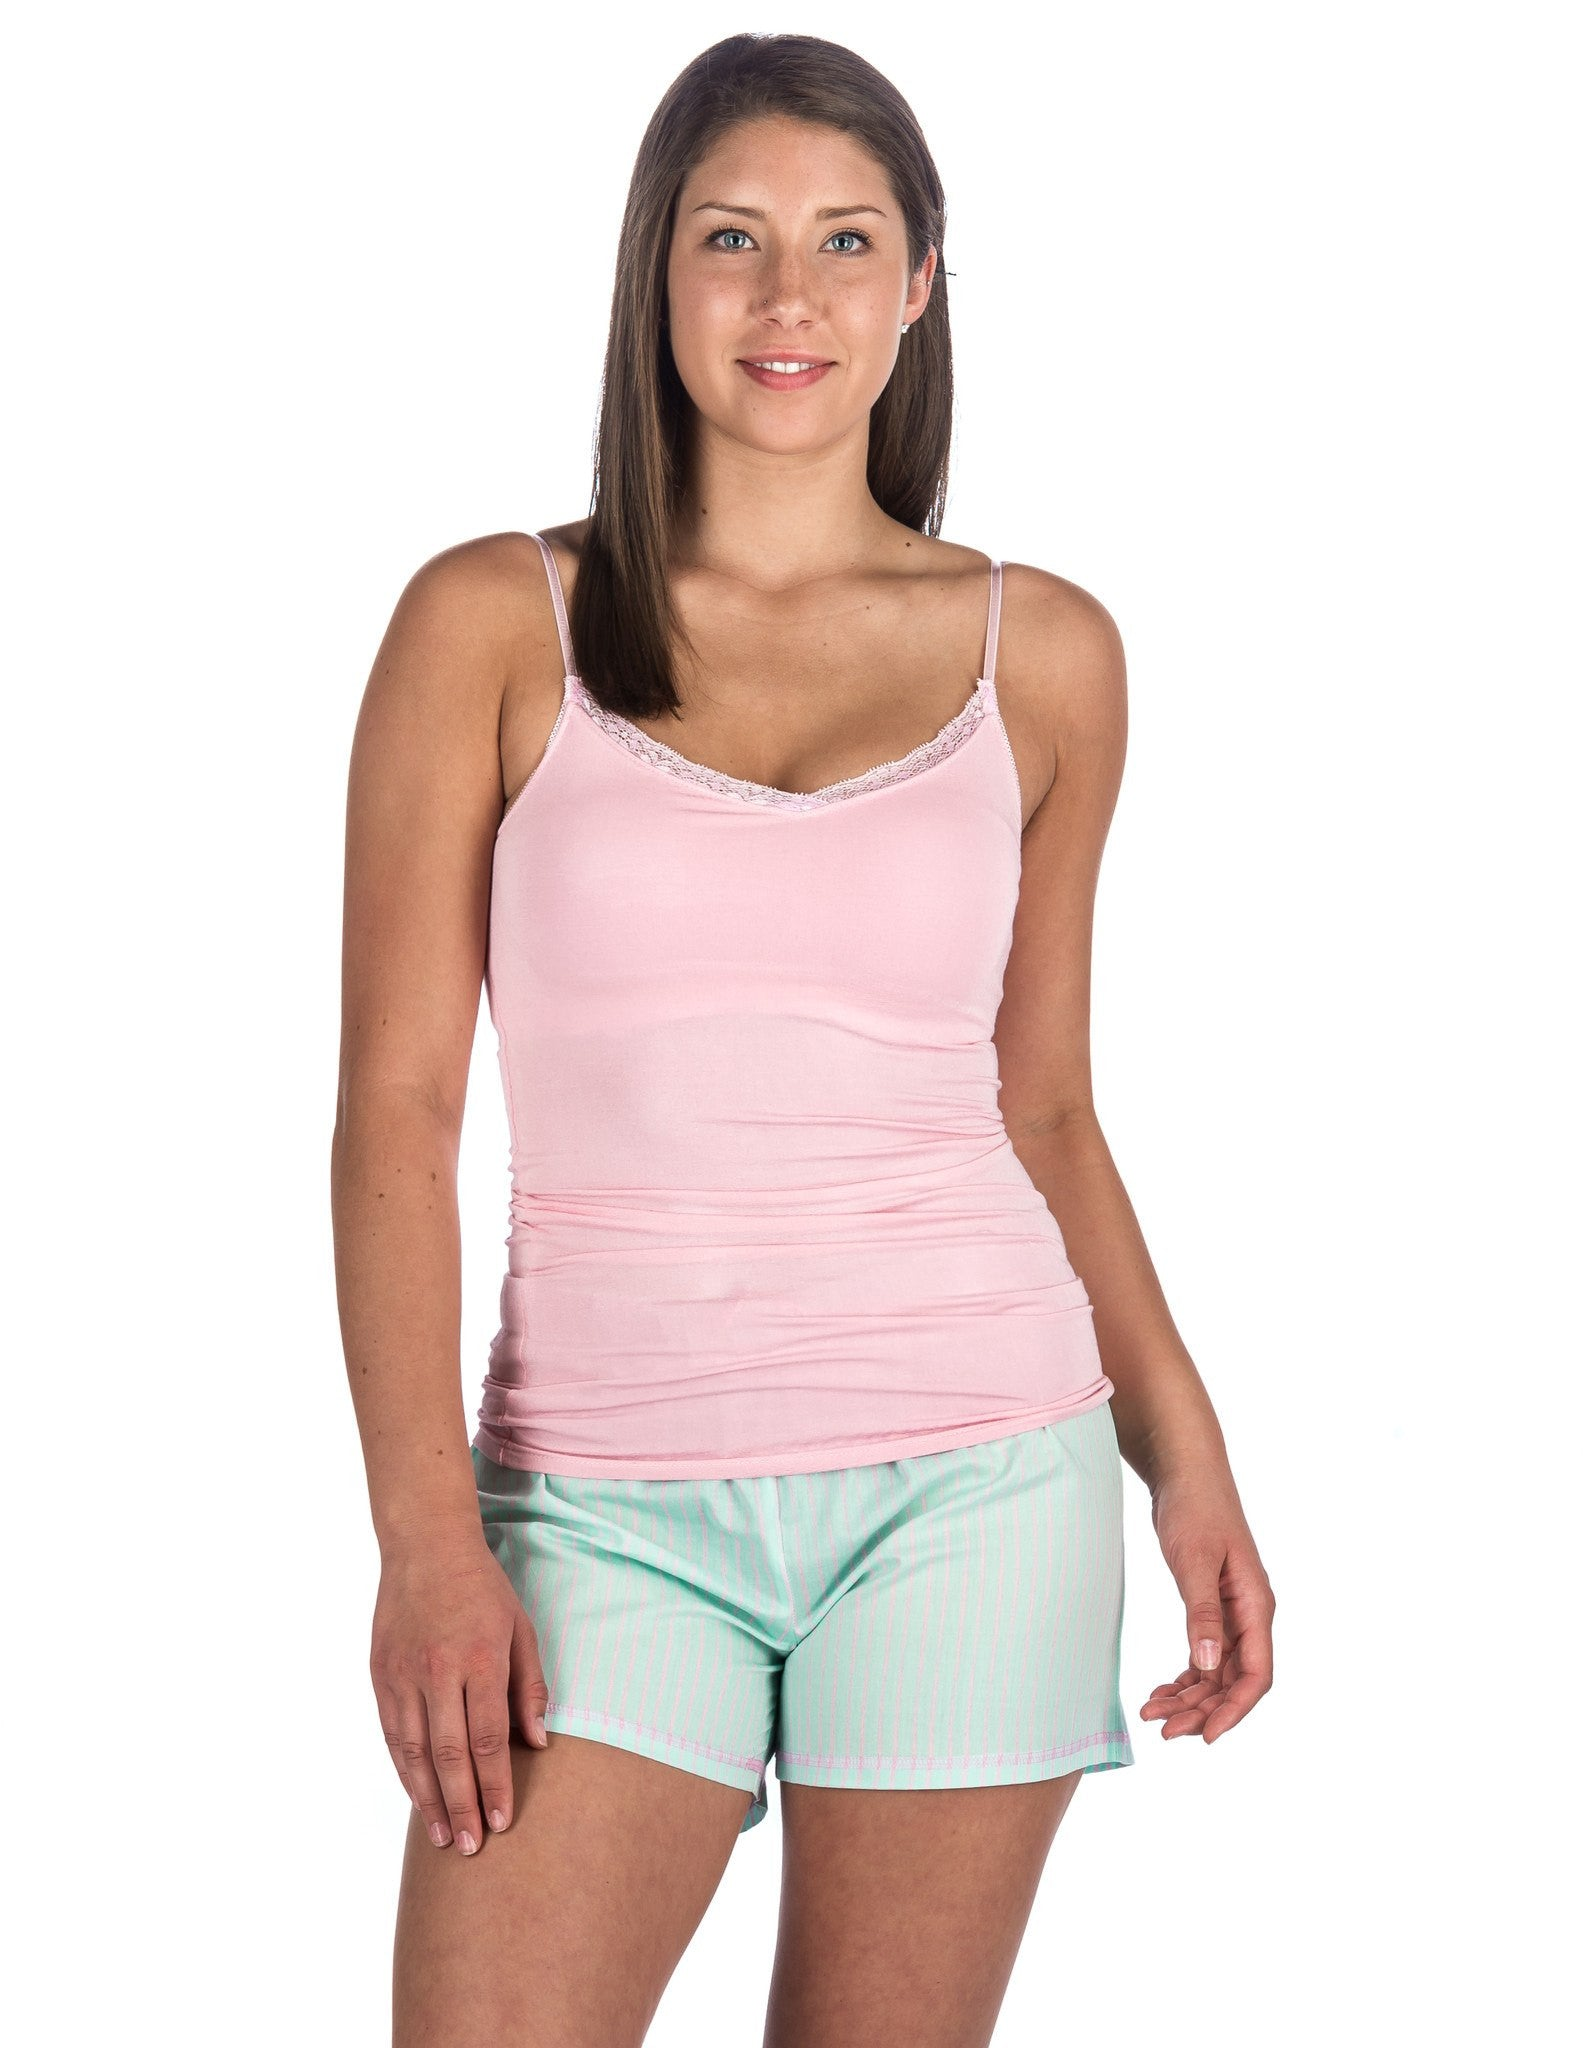 Women's Premium Cotton Poplin Shorts and Cami Sleep Set